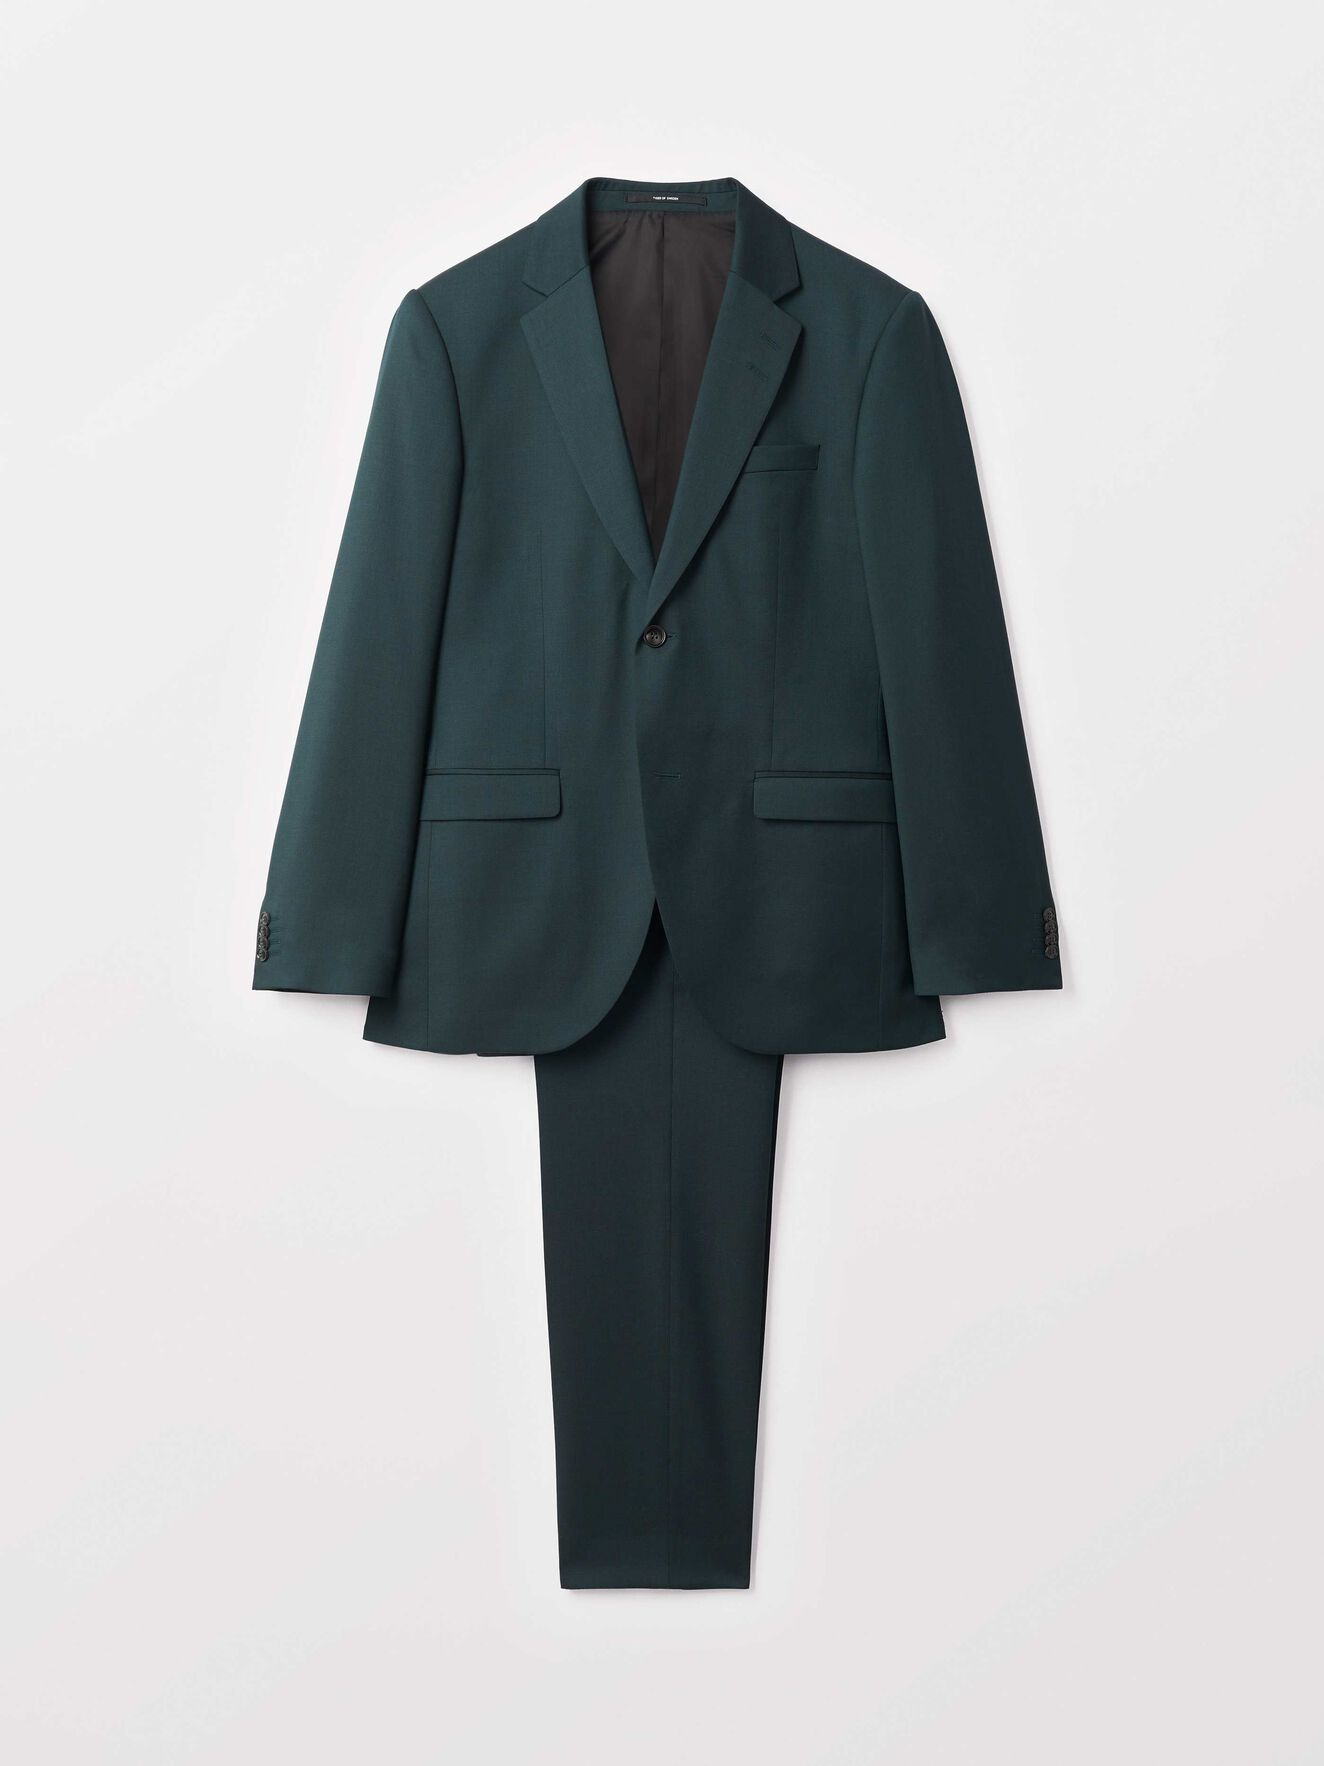 S.Jamonte Suit in Wood Green from Tiger of Sweden